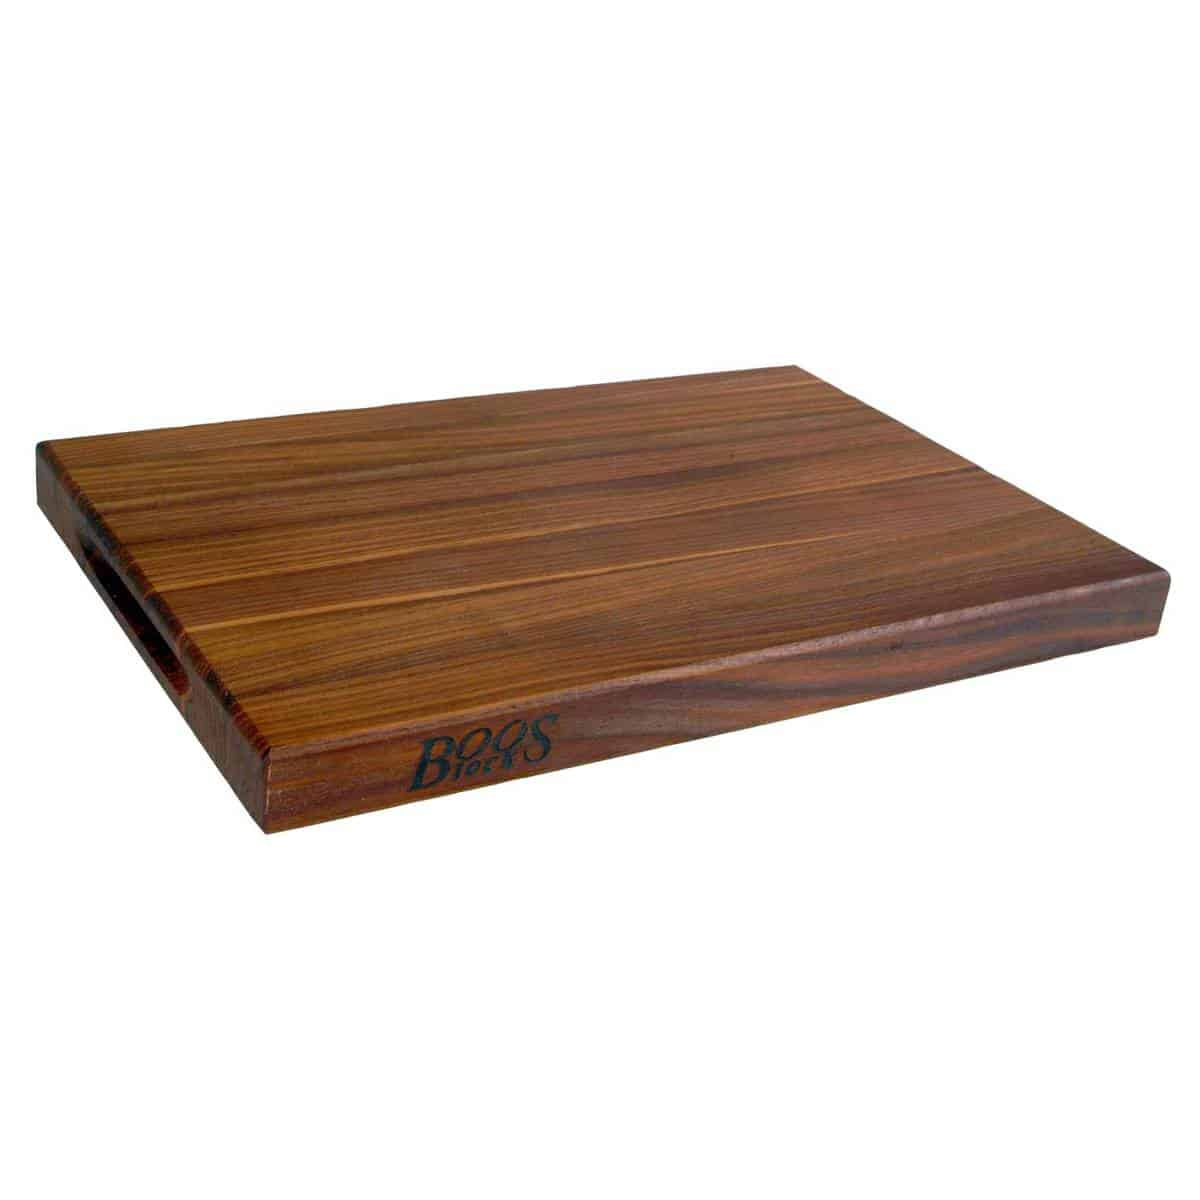 John Boos & Co. Walnut Edge-Grain Cutting Board